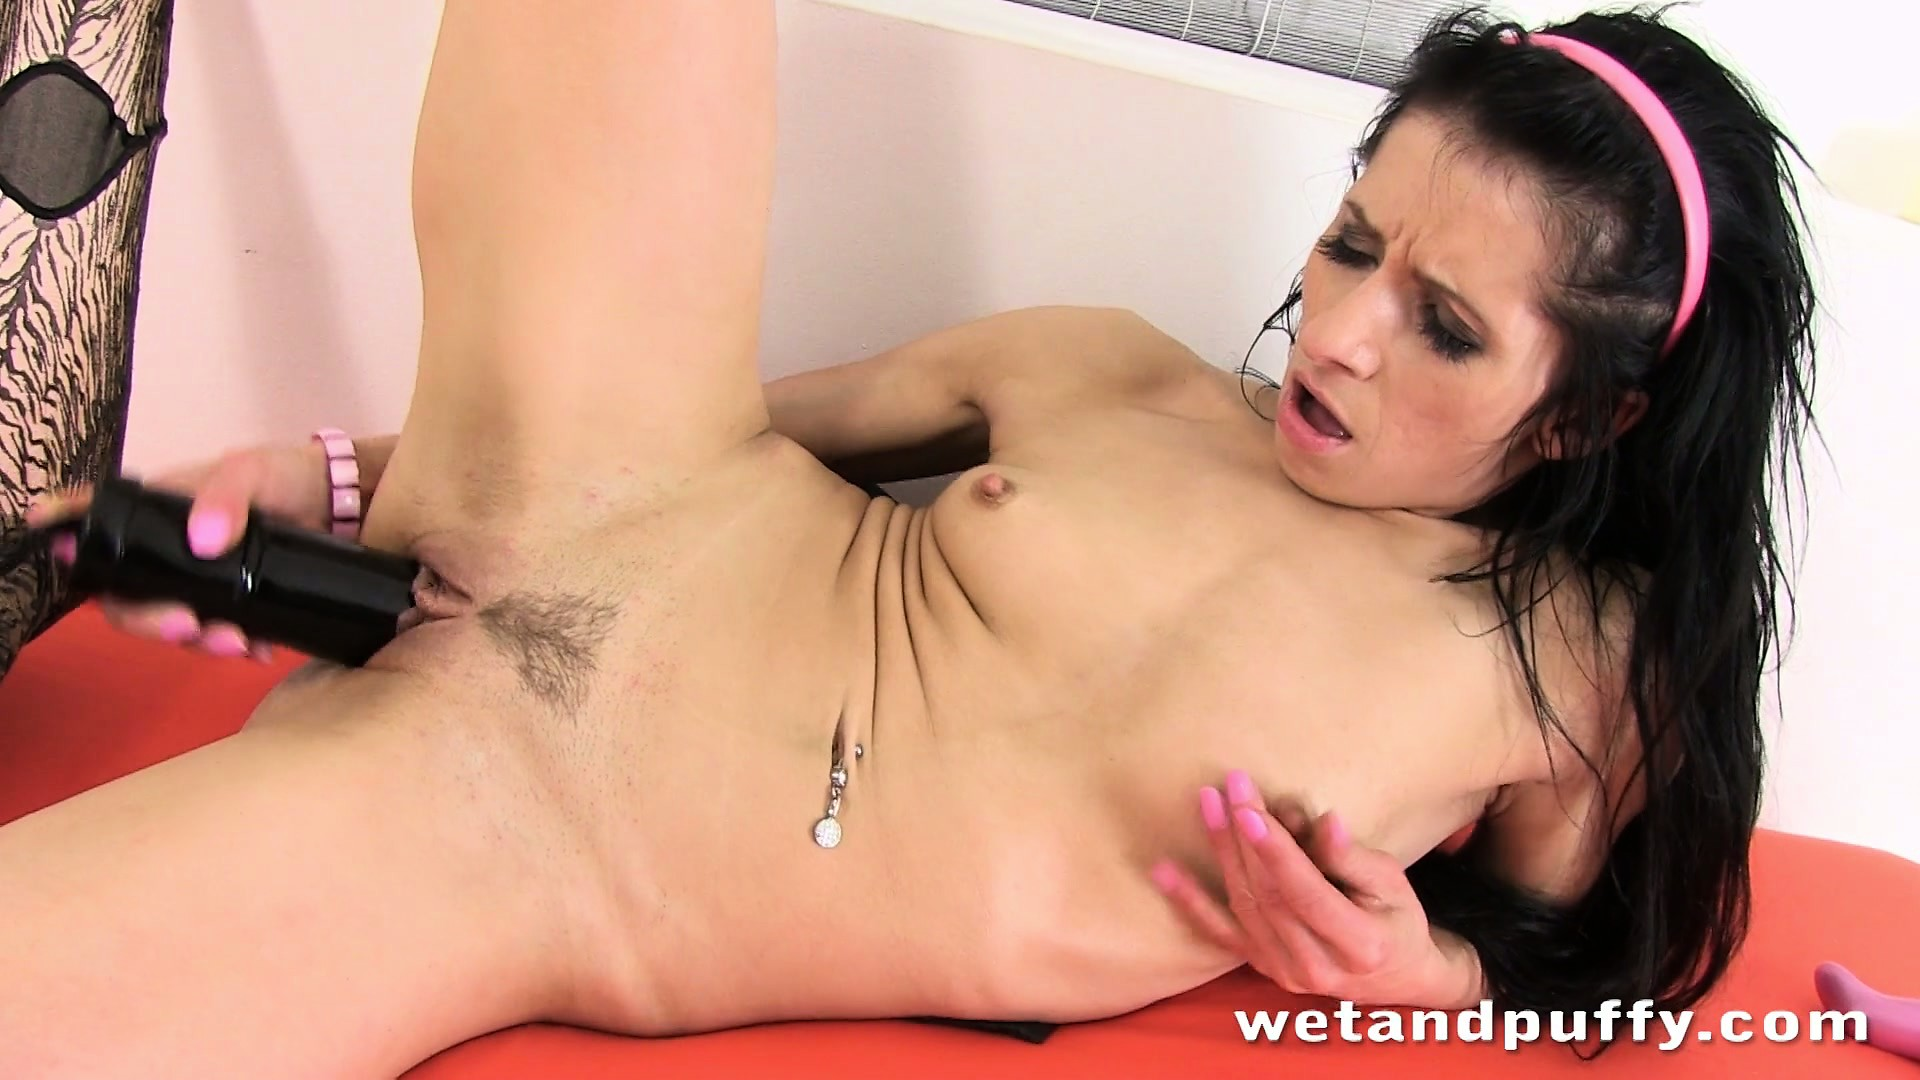 Porn Tube of Skinny Brunette Babe Fills Her Pussy Up With A Large Sex-toy